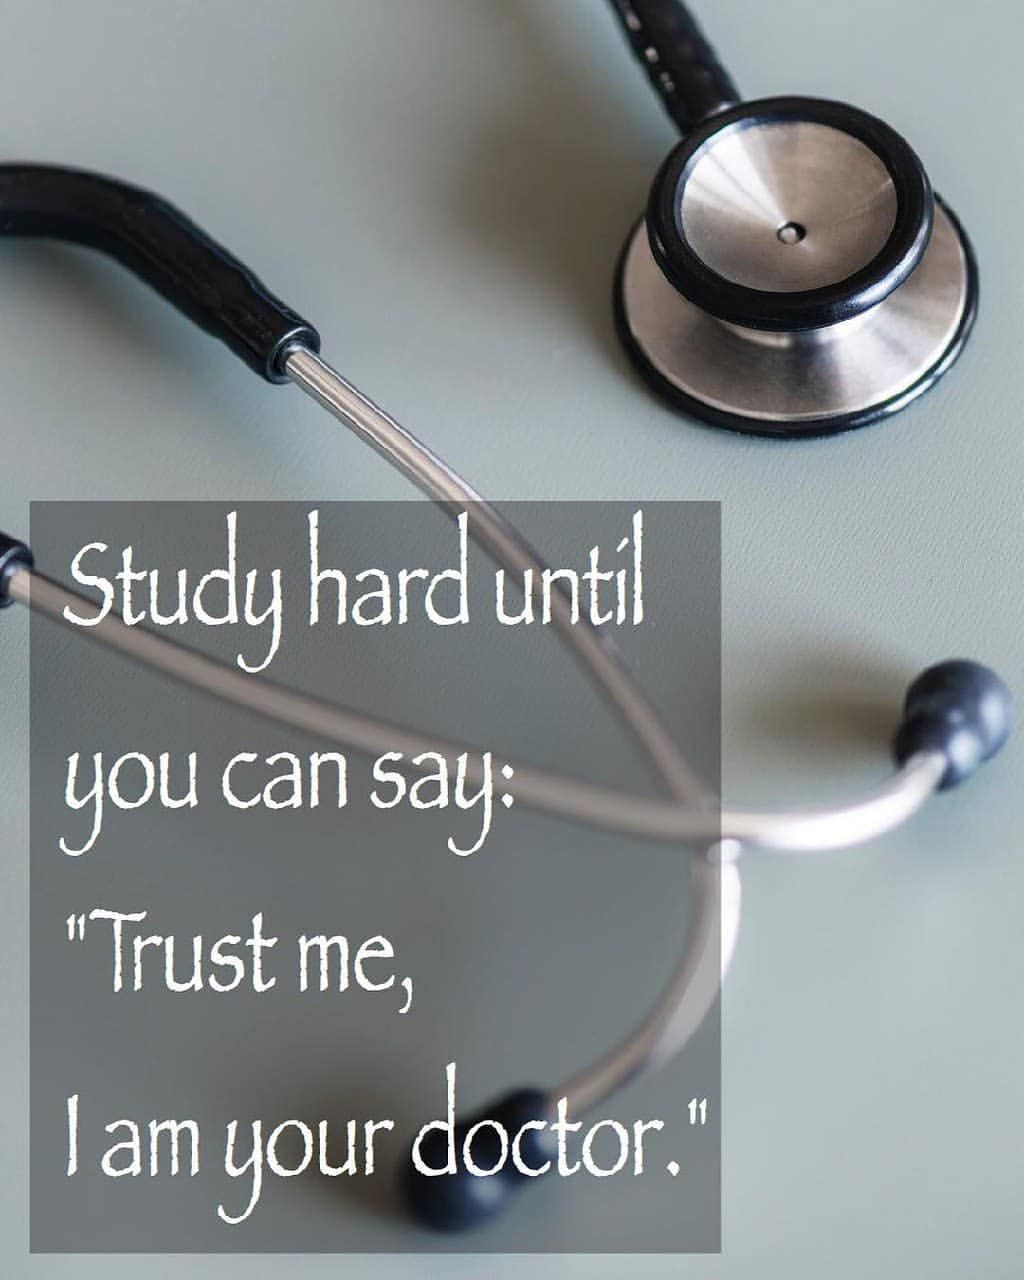 I'm your doctor